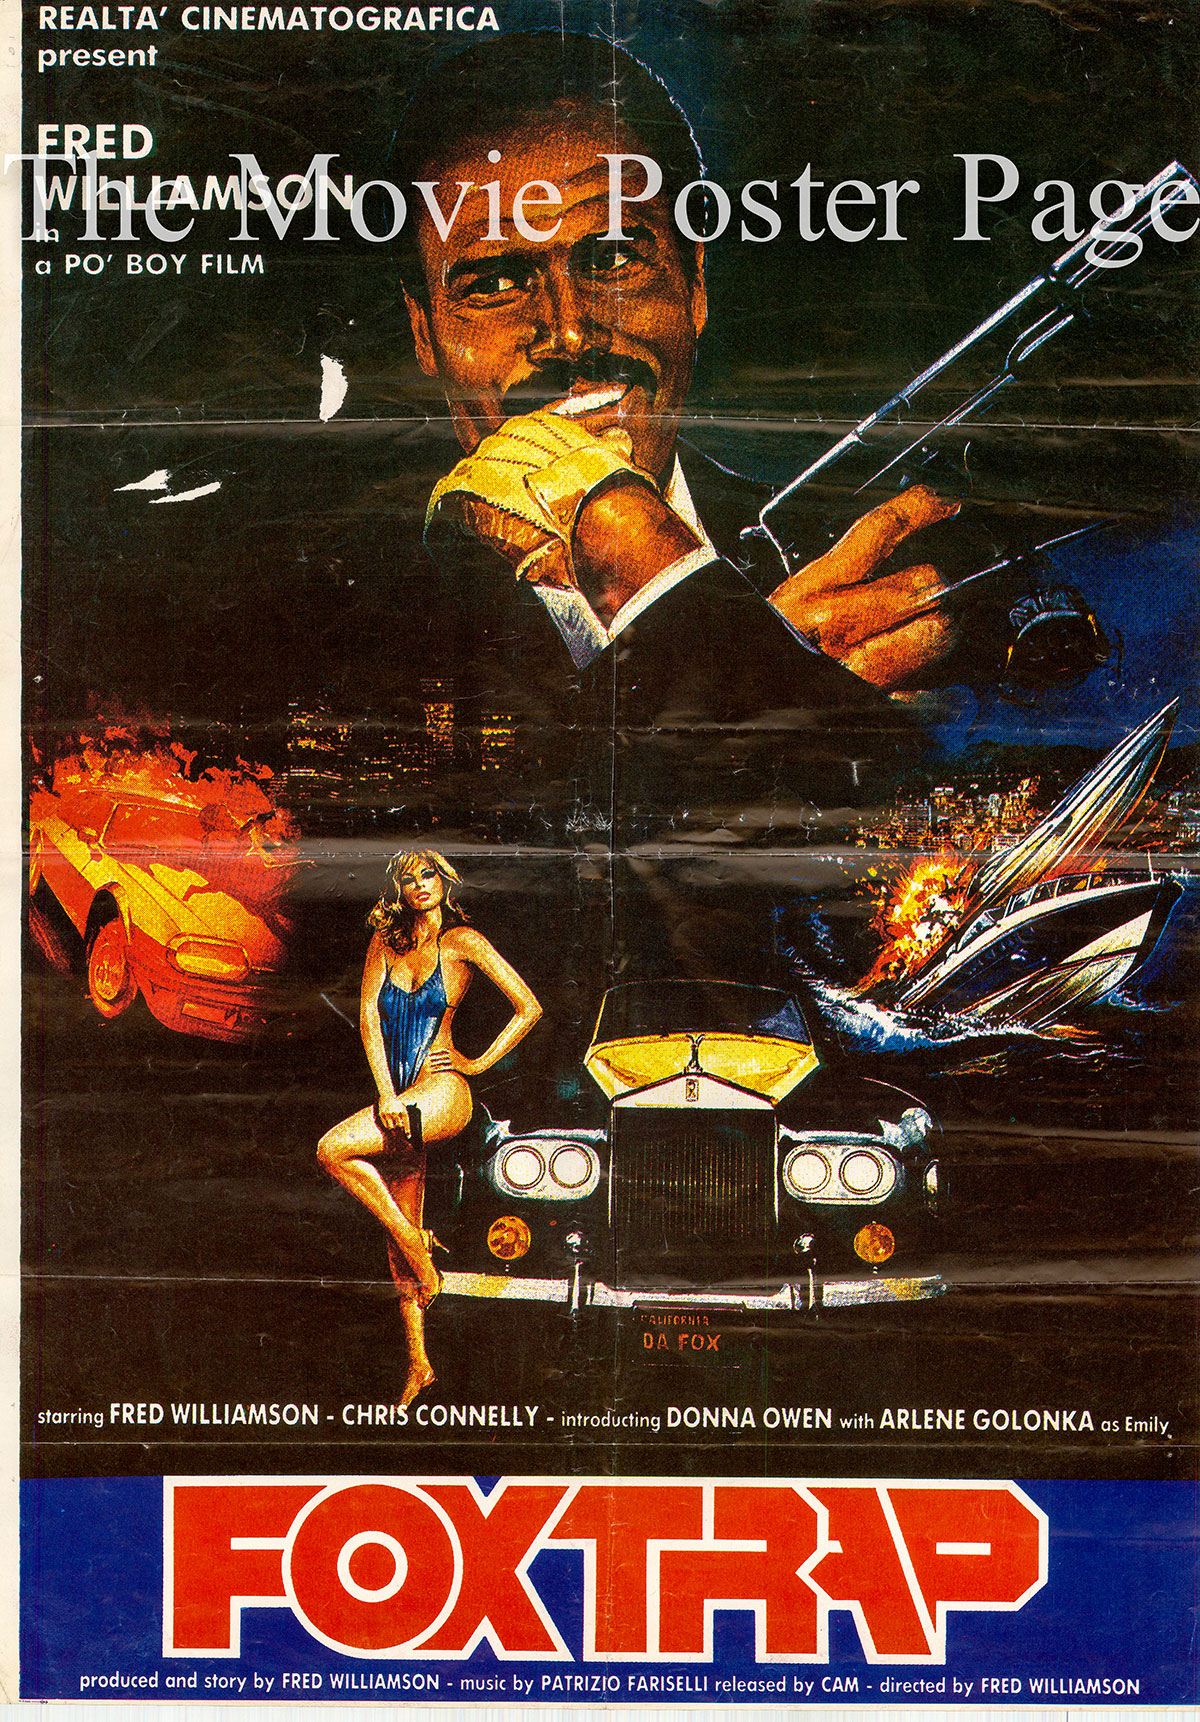 Pictured is a CAM release poster for the 1986 Fred Williamson film Foxtrap starring Fred Williamson.